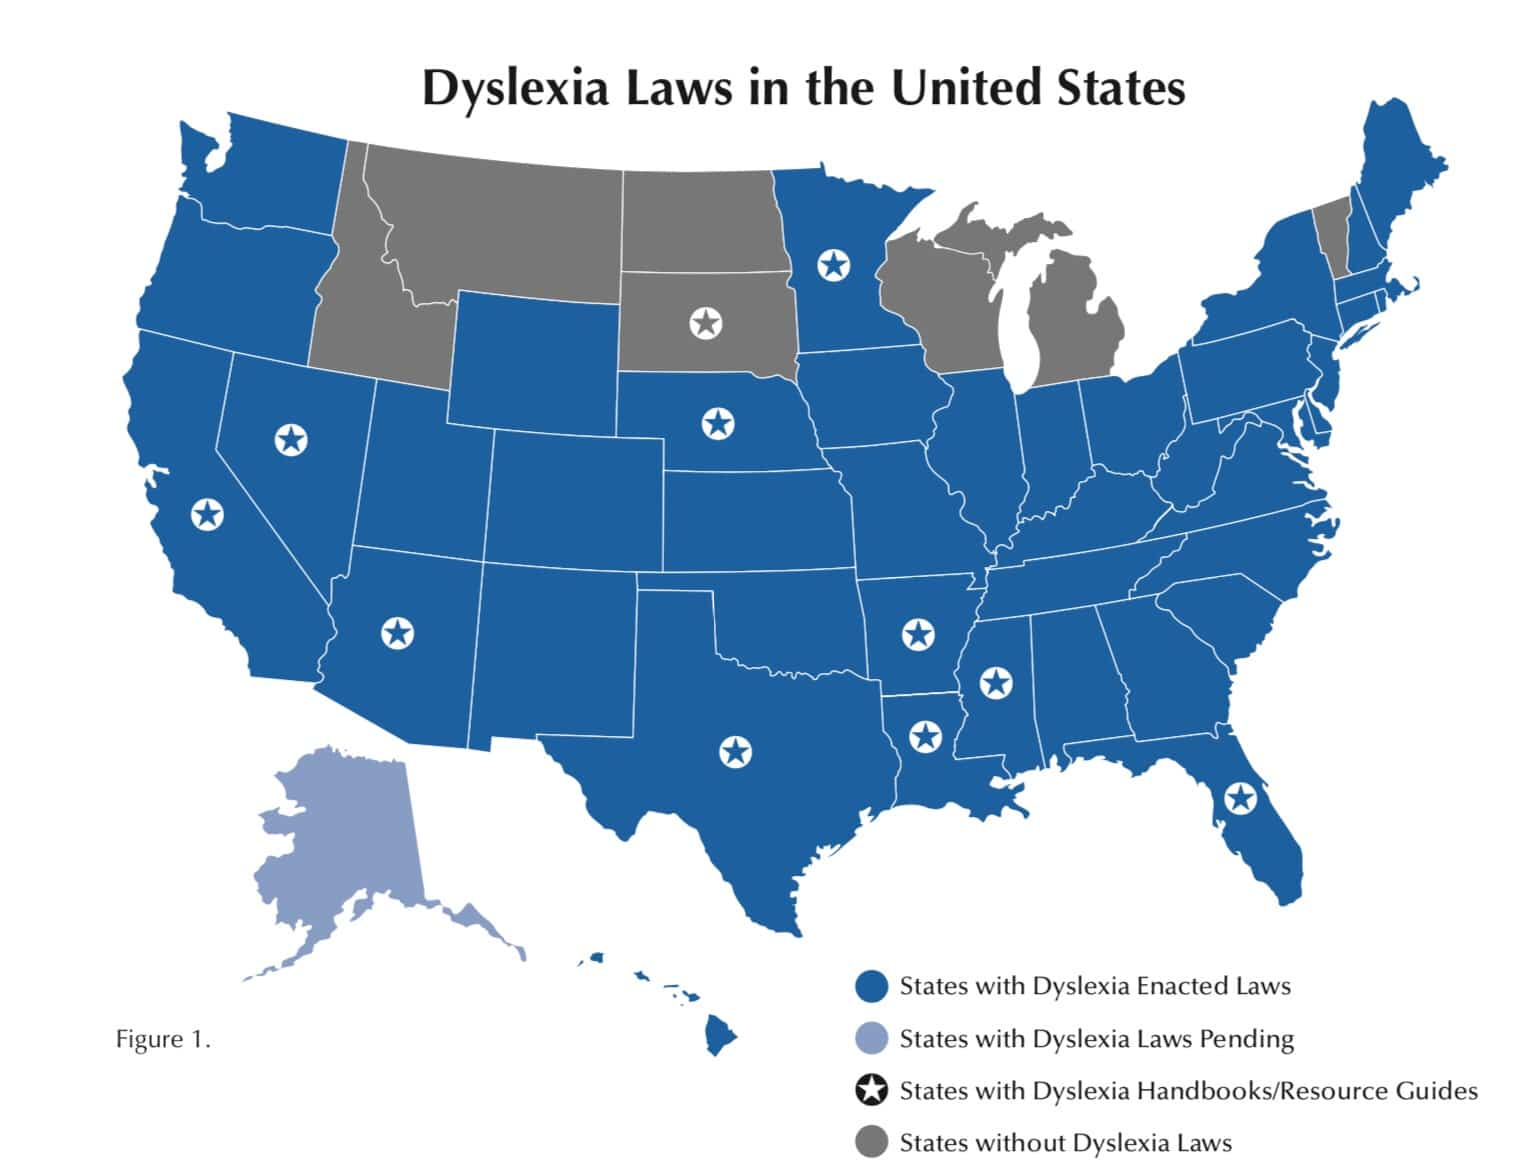 Dyslexia Laws in the United States Map